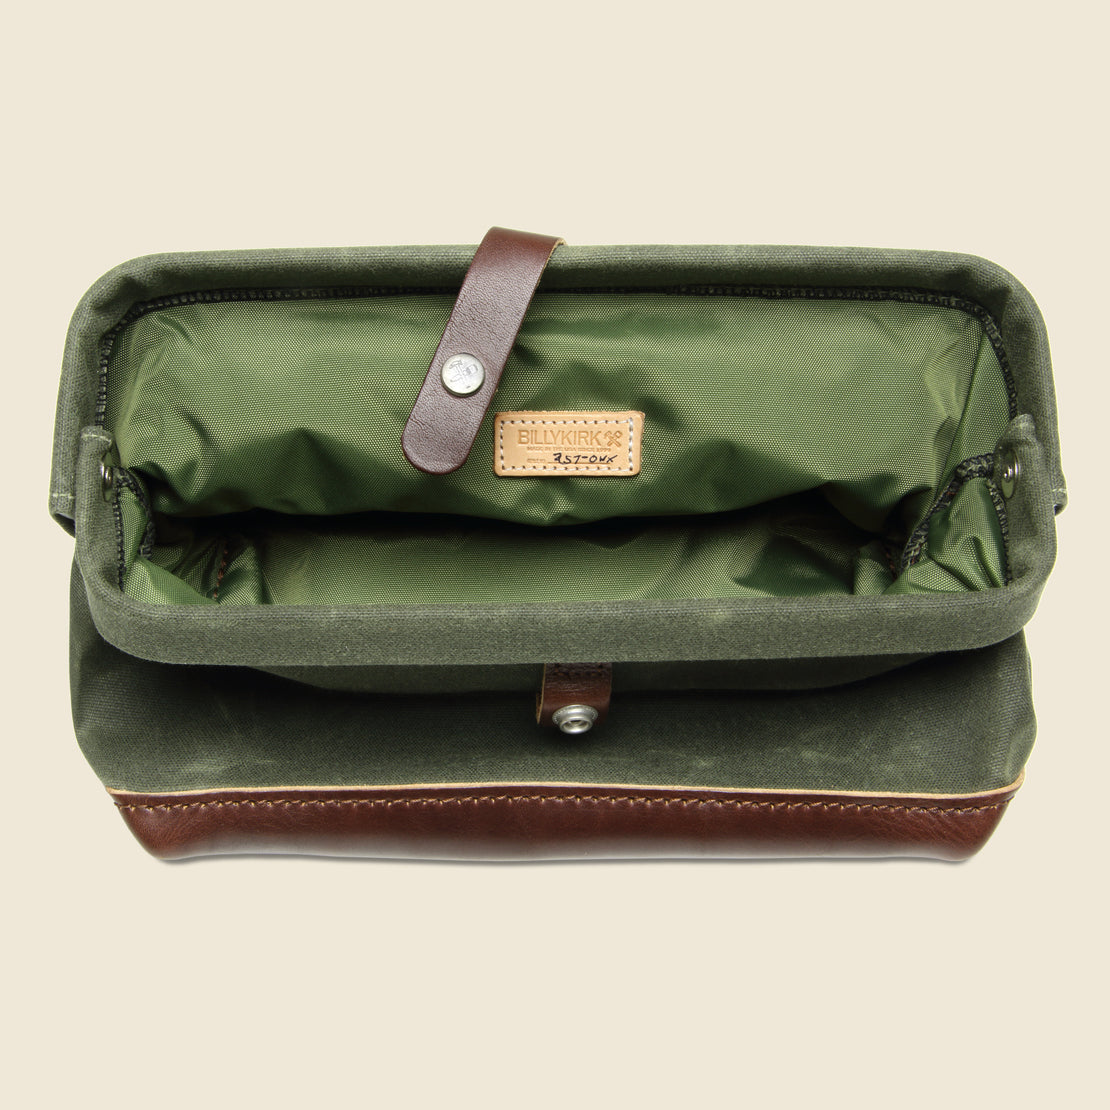 No. 257 Snap Dopp Kit - Olive/Brown - BILLYKIRK - STAG Provisions - Accessories - Bags / Luggage